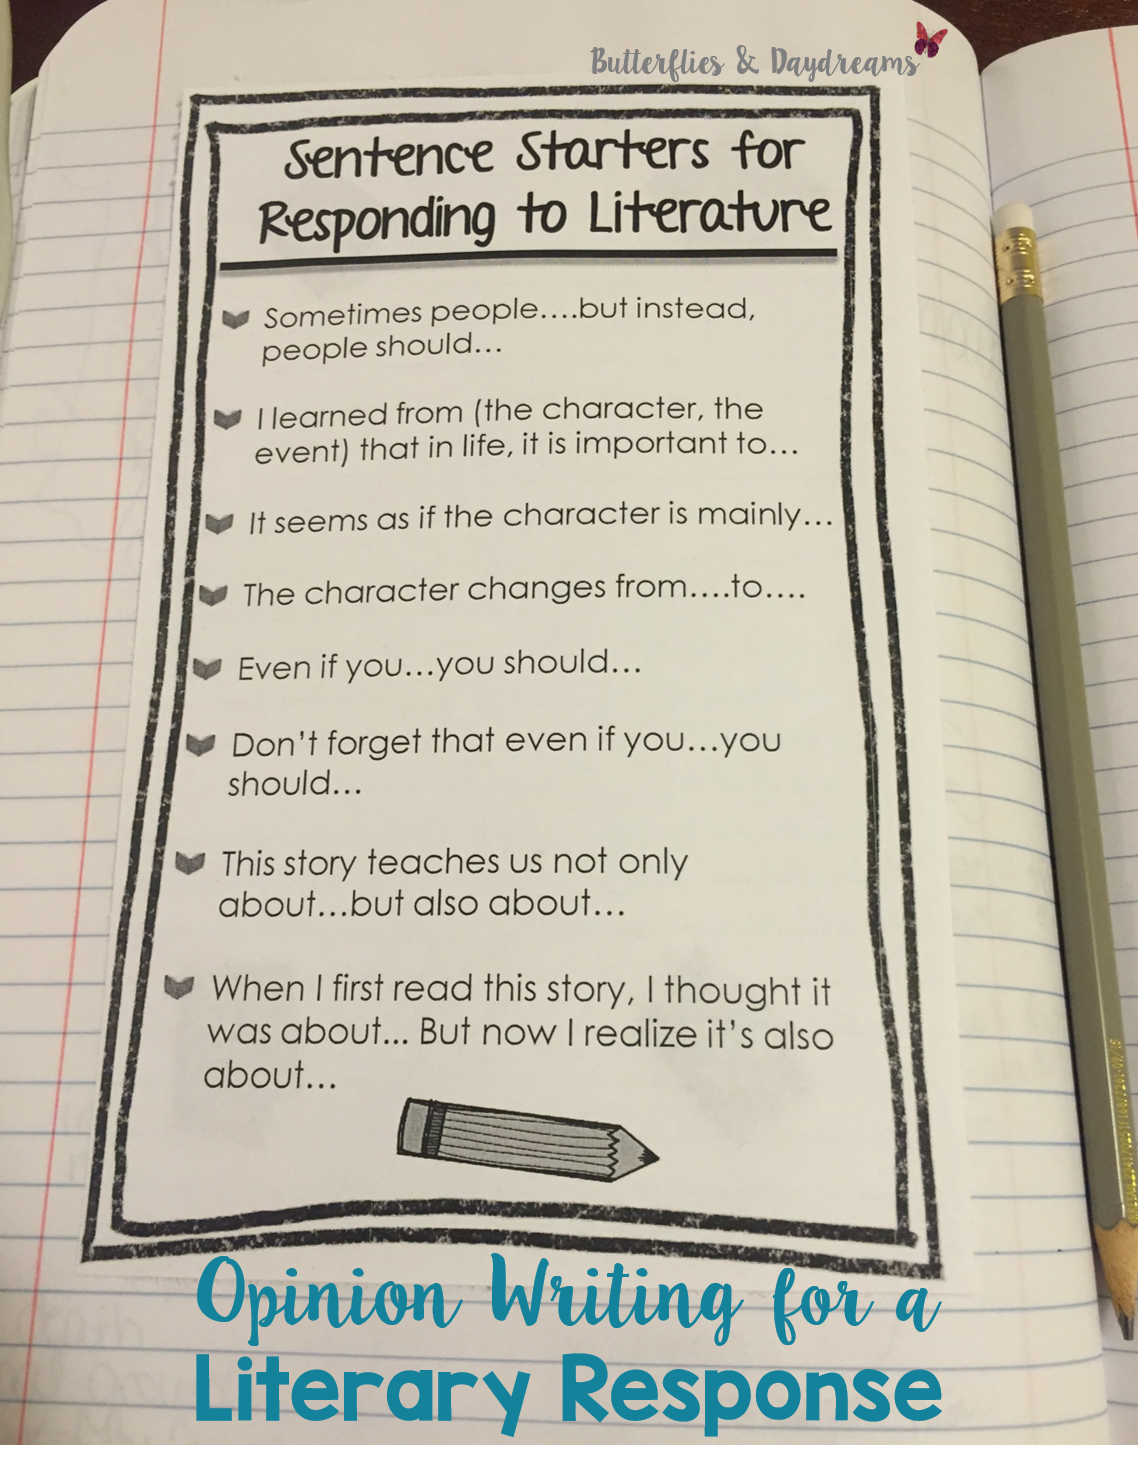 response to literature graphic essay organizers A guide for english teachers and students on how to write a text response, such   competent text responses they must first be familiar with the literary devices   the structure of the essay should illustrate an evolution of the student's  helping  students make the most of graphic organizers to improve reading and writing.